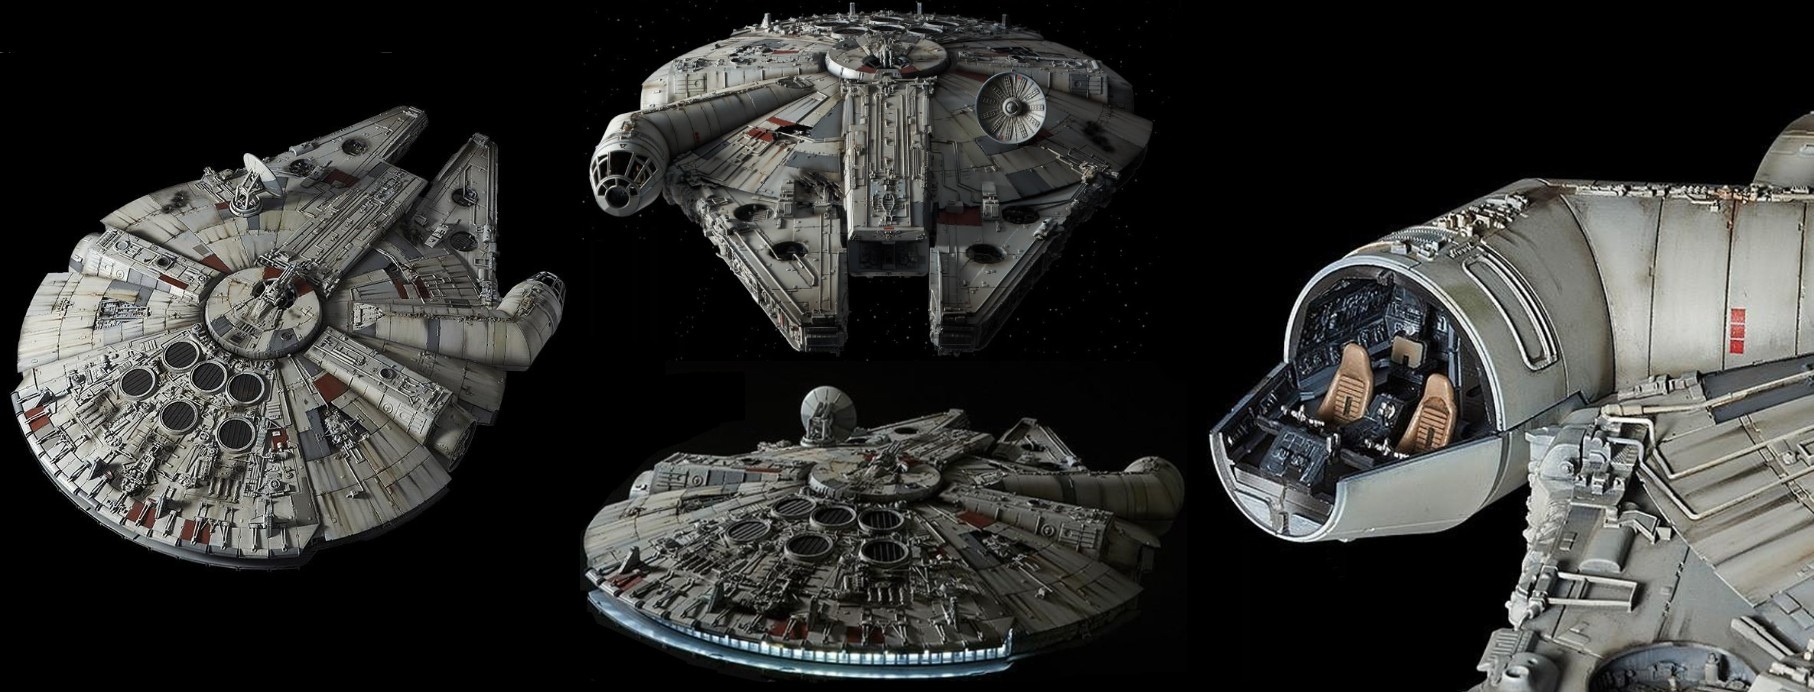 1/72-Scale Perfect Grade Millennium Falcon